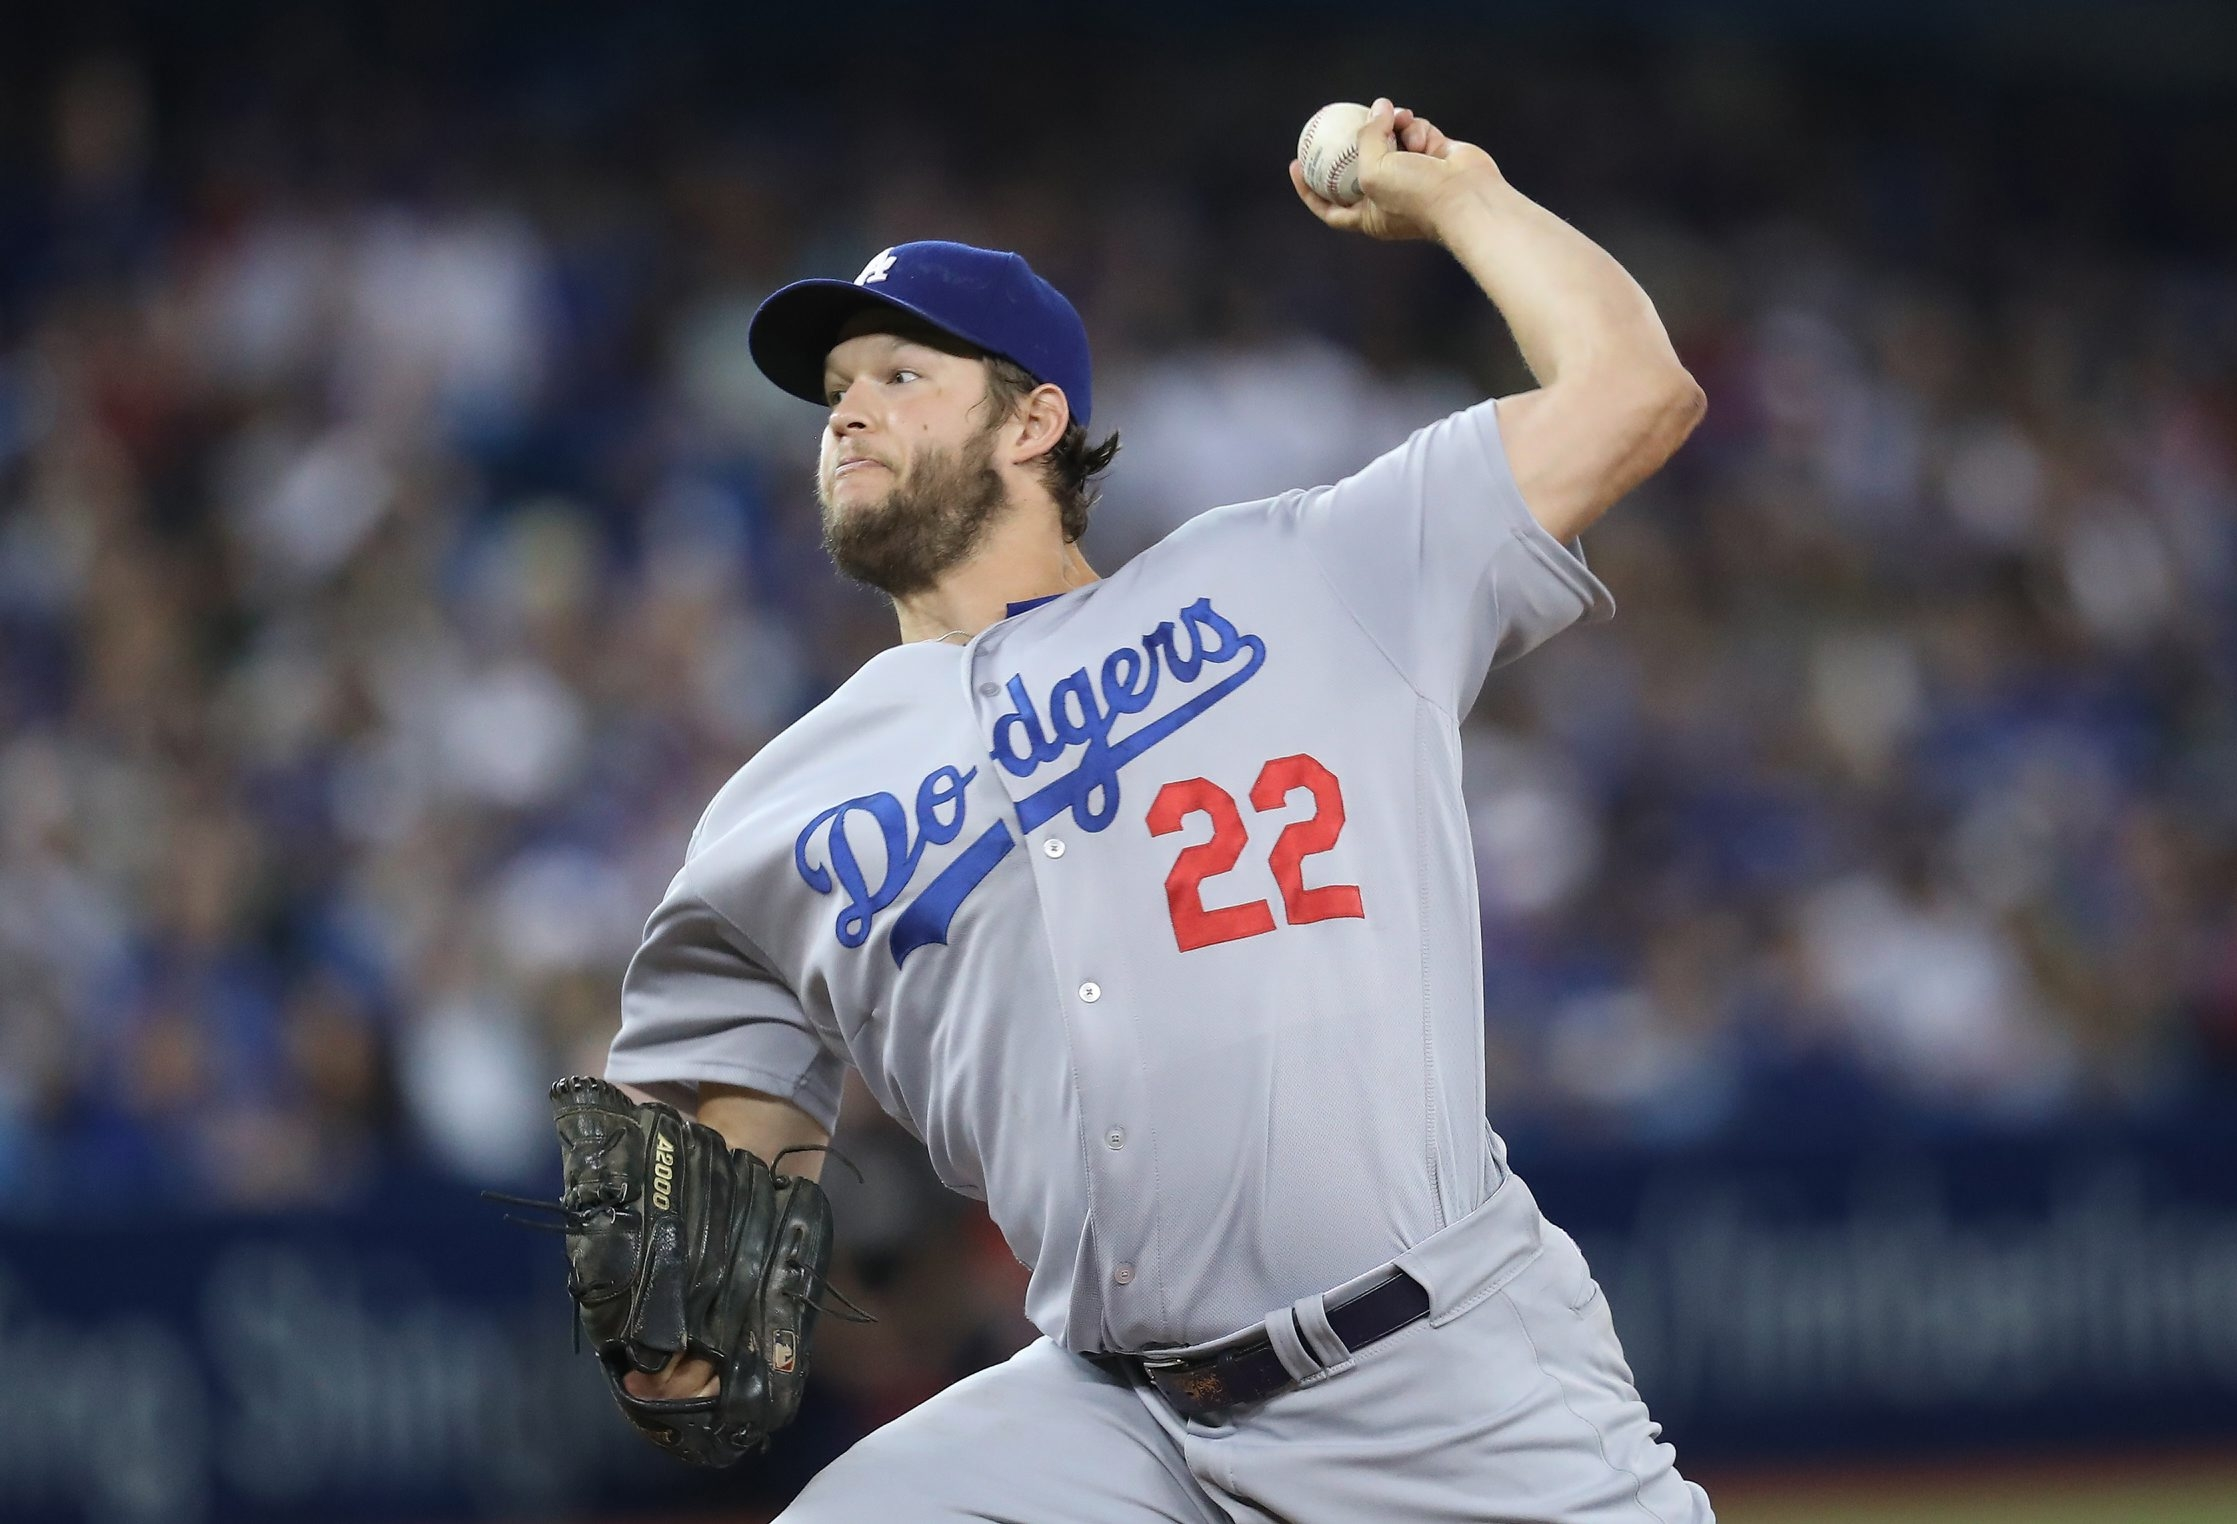 Clayton Kershaw's strikeout total reached double-digits against the Toronto Blue Jays.